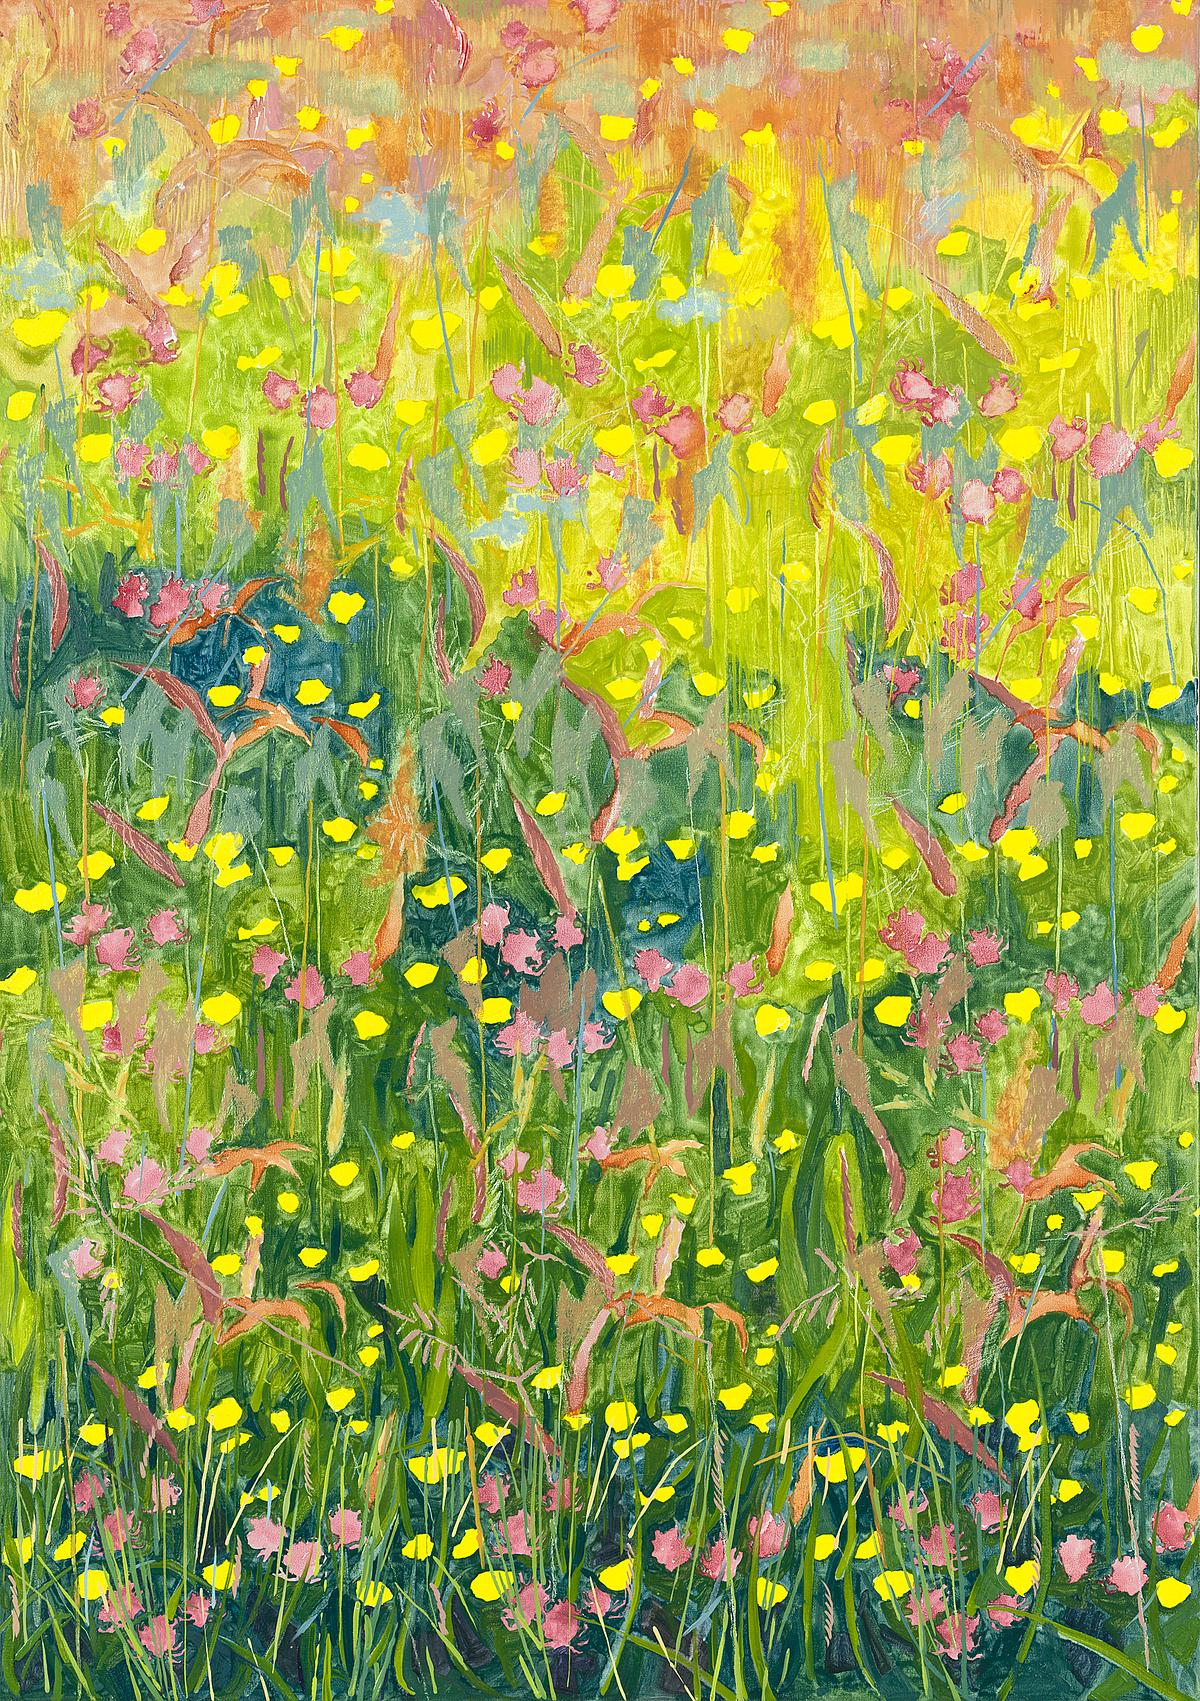 Summer Meadows, L Glover, 2014, SOLD